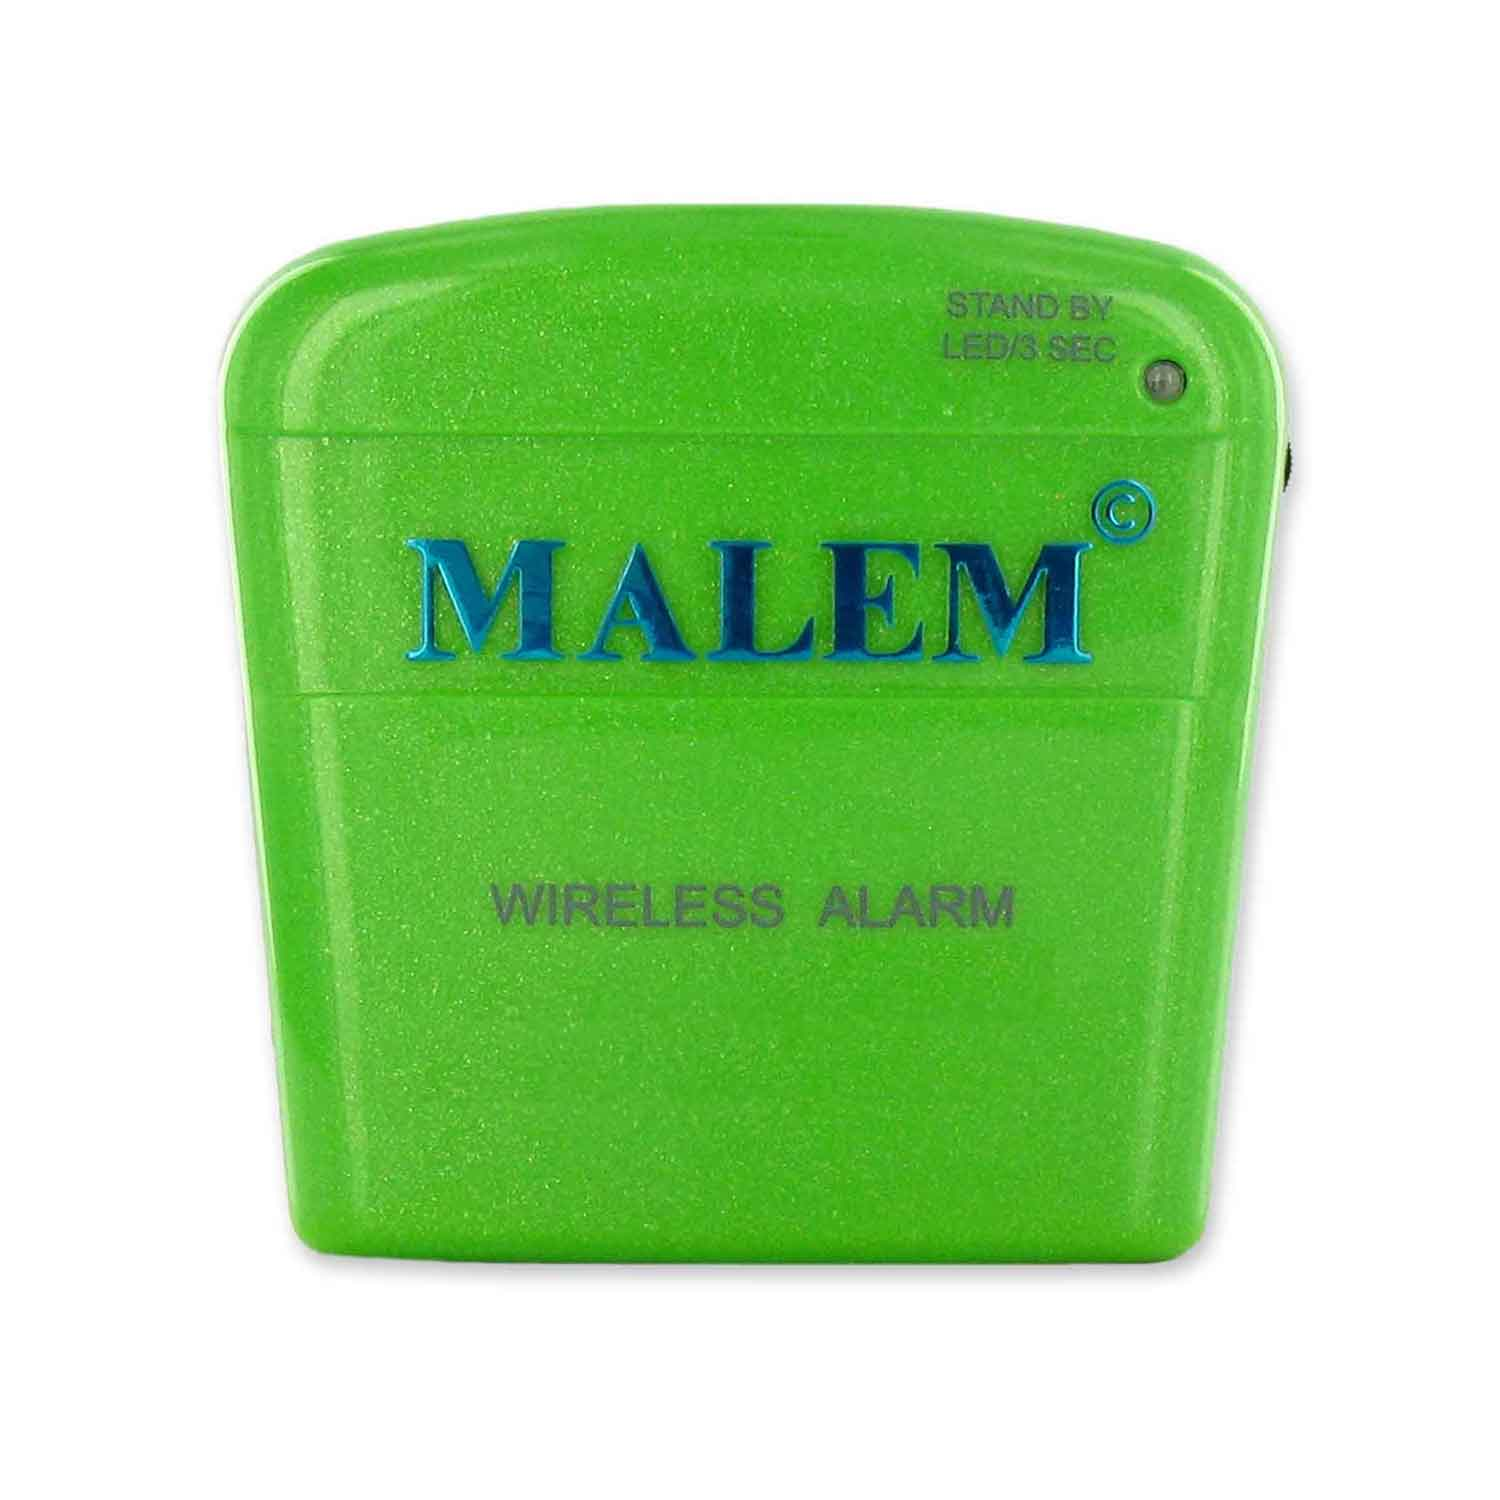 Second Receiver for Malem Wireless